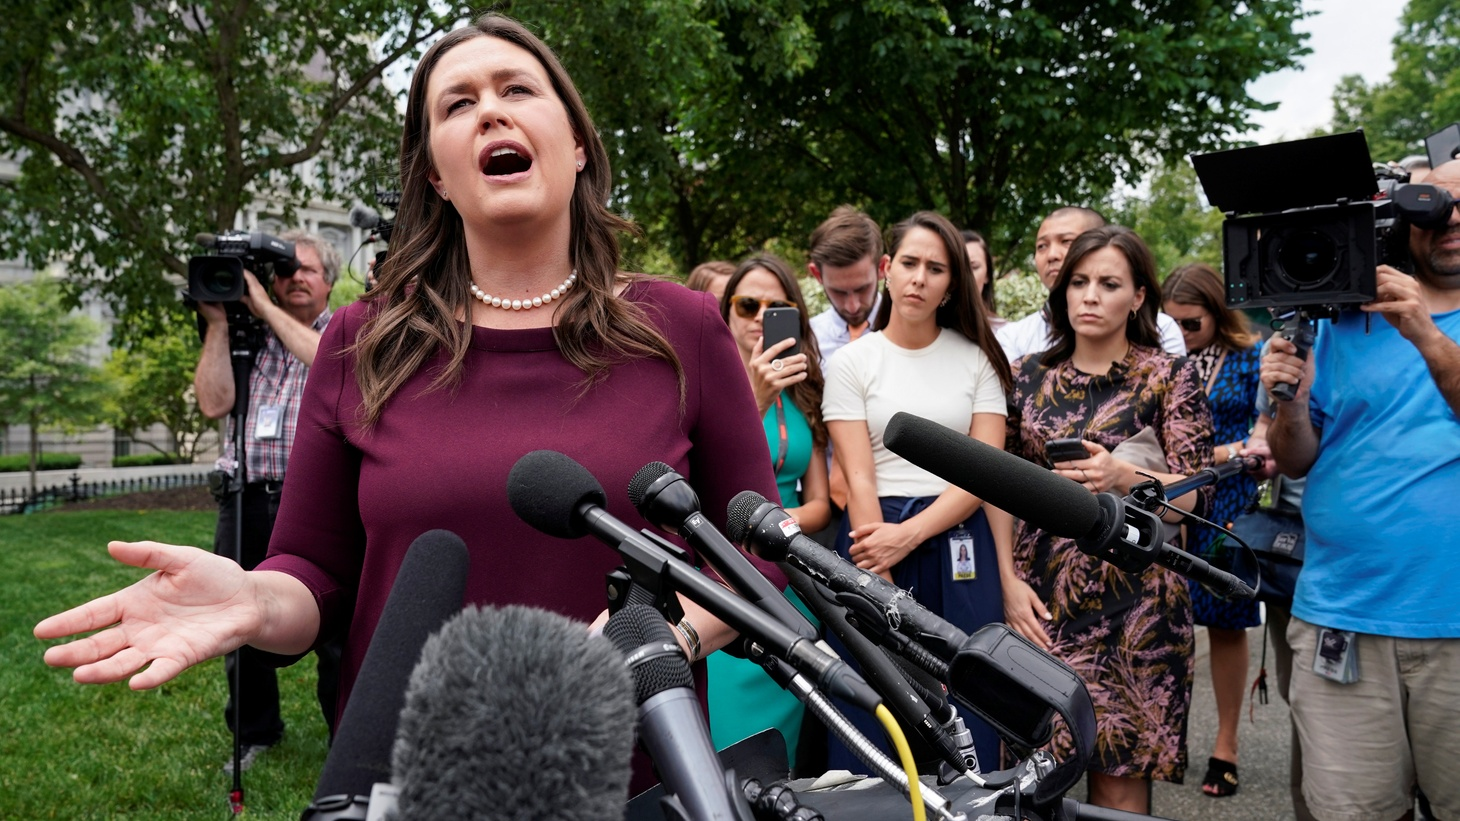 White House Press Secretary Sarah Sanders speaks on Special Counsel Robert Mueller's statement about his report into Russia's role in the 2016 U.S. election and any potential wrong doing by President Donald Trump at the White House in Washington, U.S., May 29, 2019.